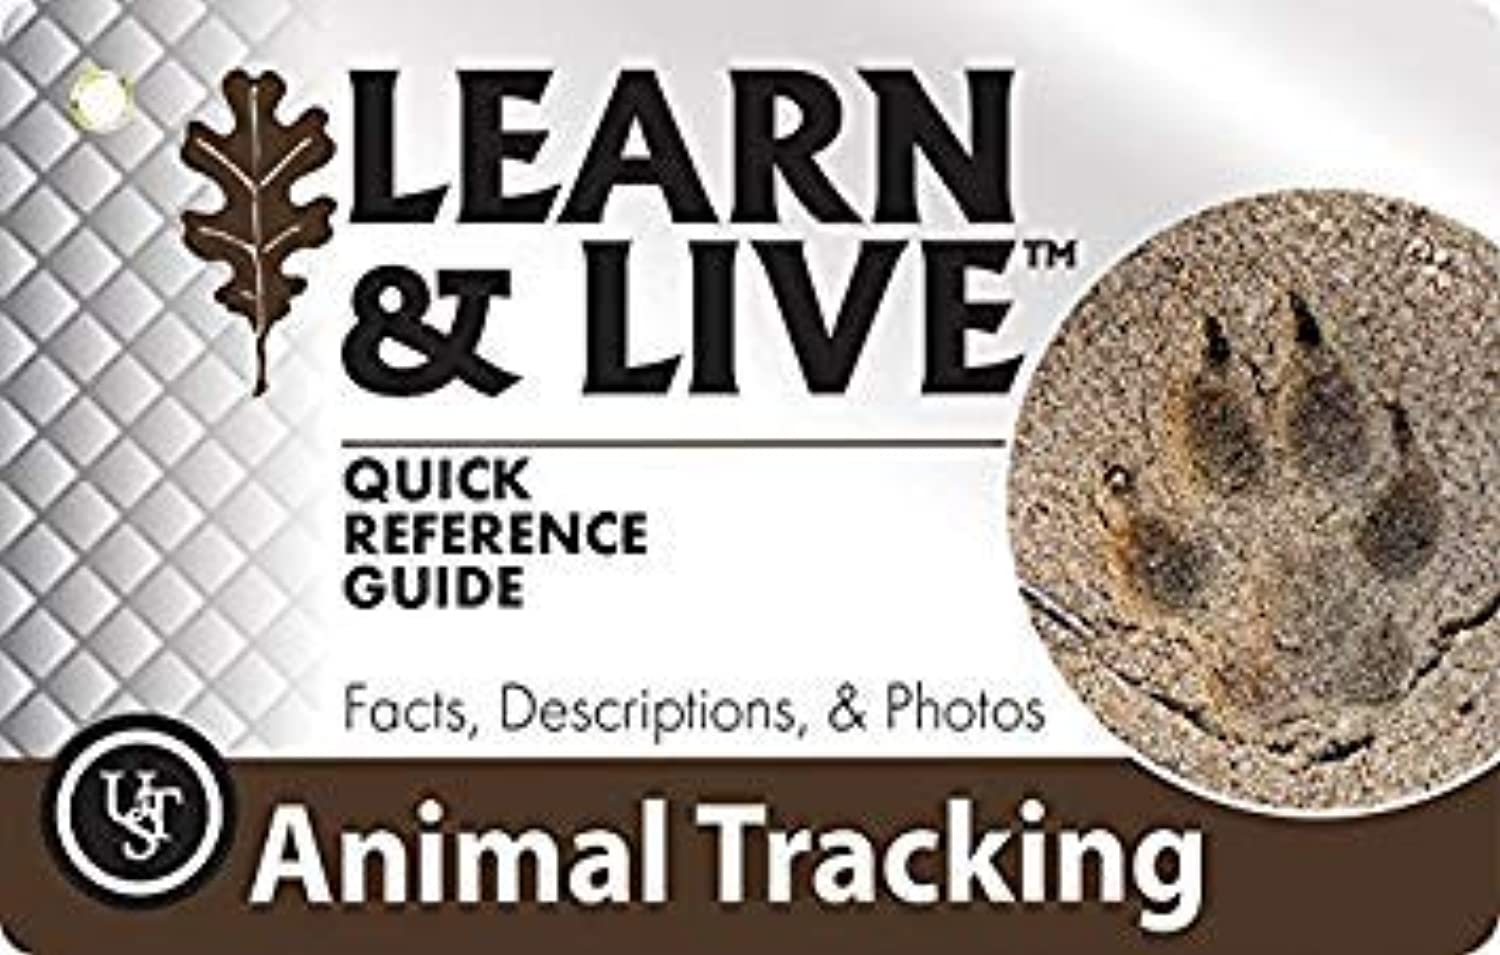 UST Learn Live Educational Card Set, Animal Tracking